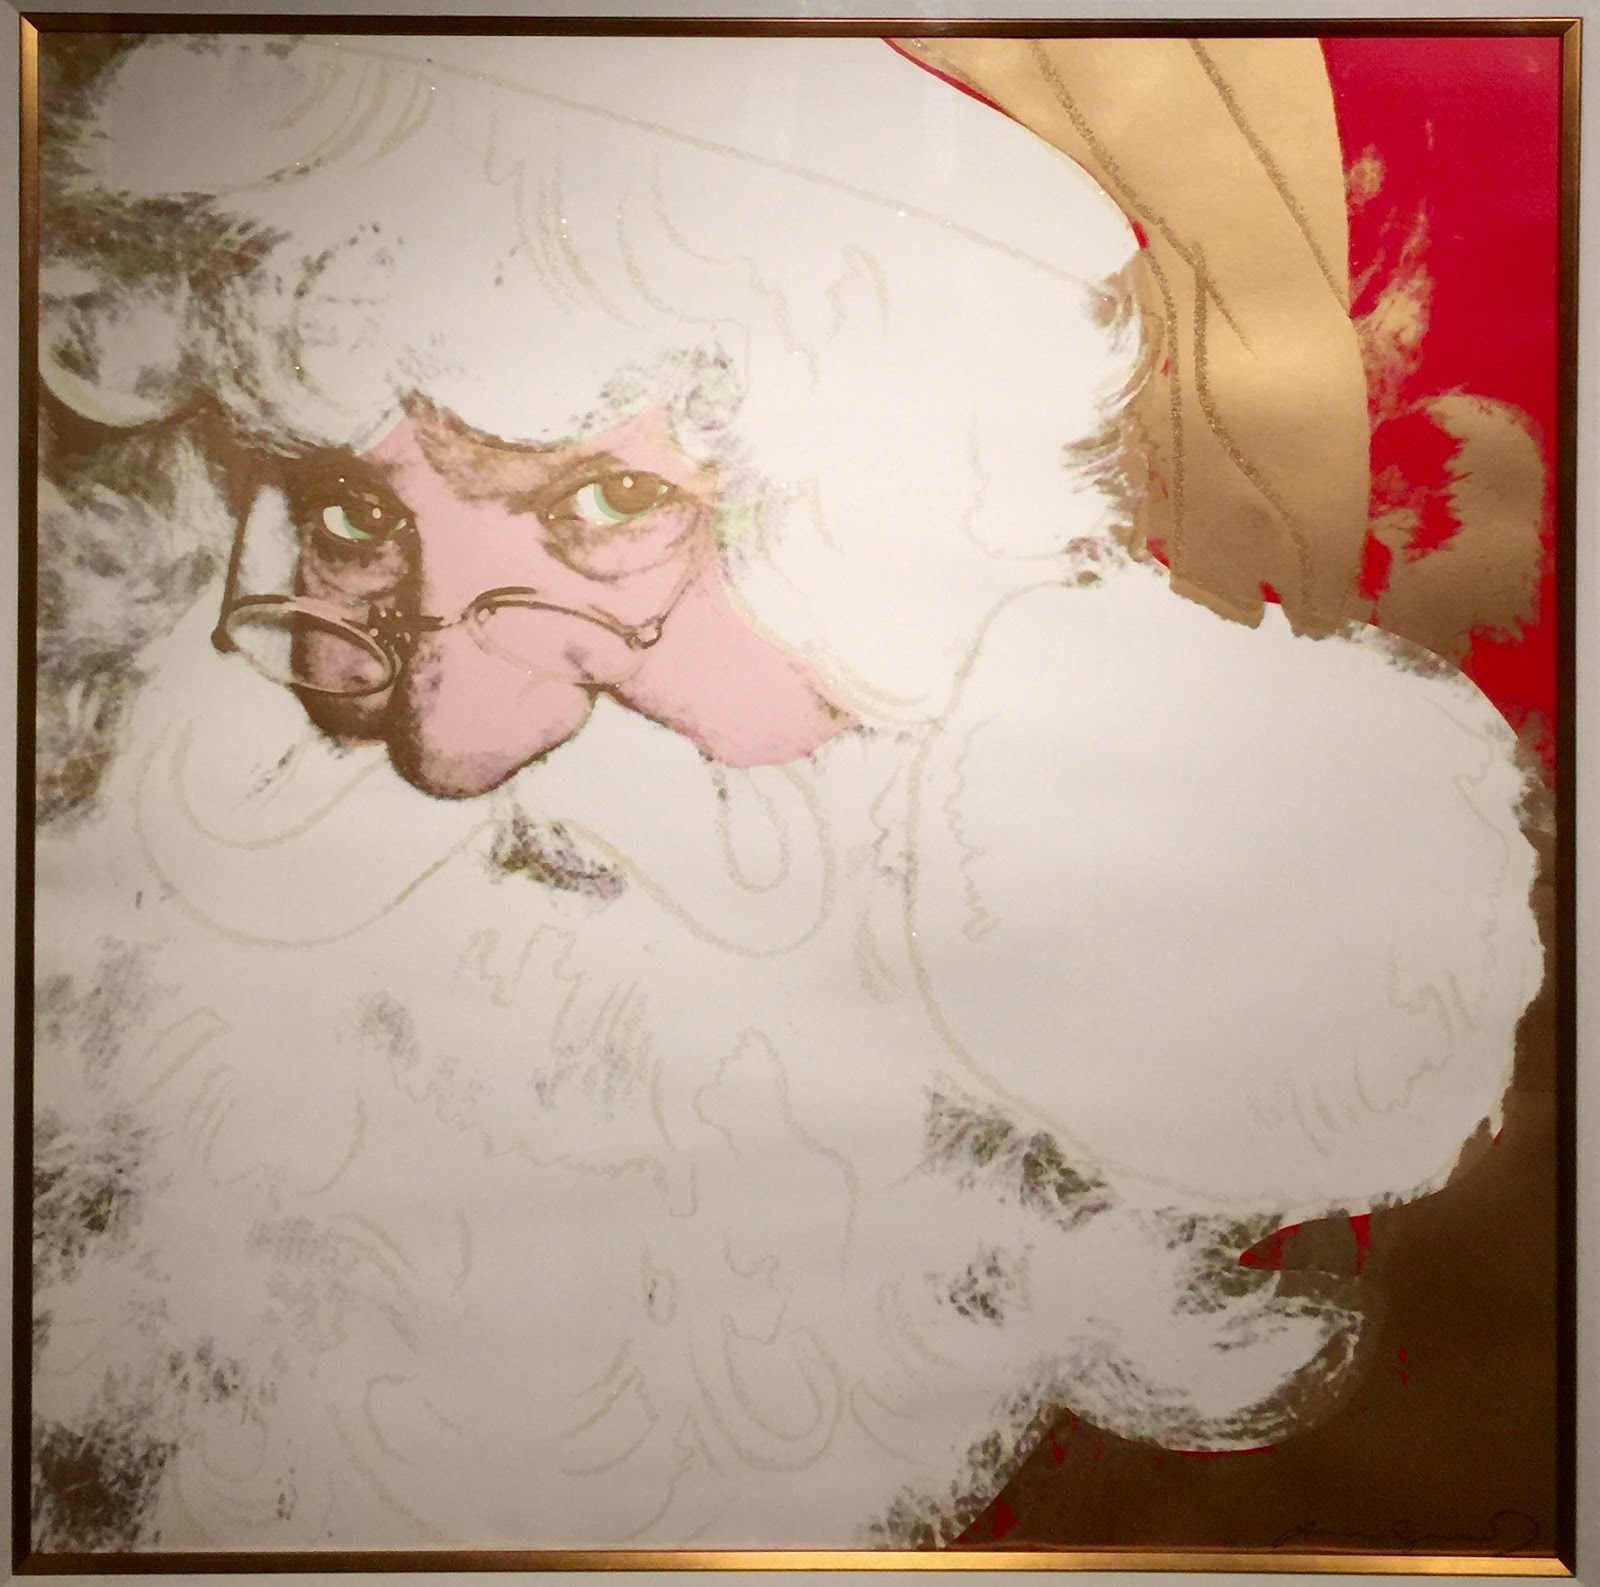 Modern contemporary art collection santa claus from myths santa claus from myths 1981 screenprint with diamond dust by andy warhol jeuxipadfo Choice Image